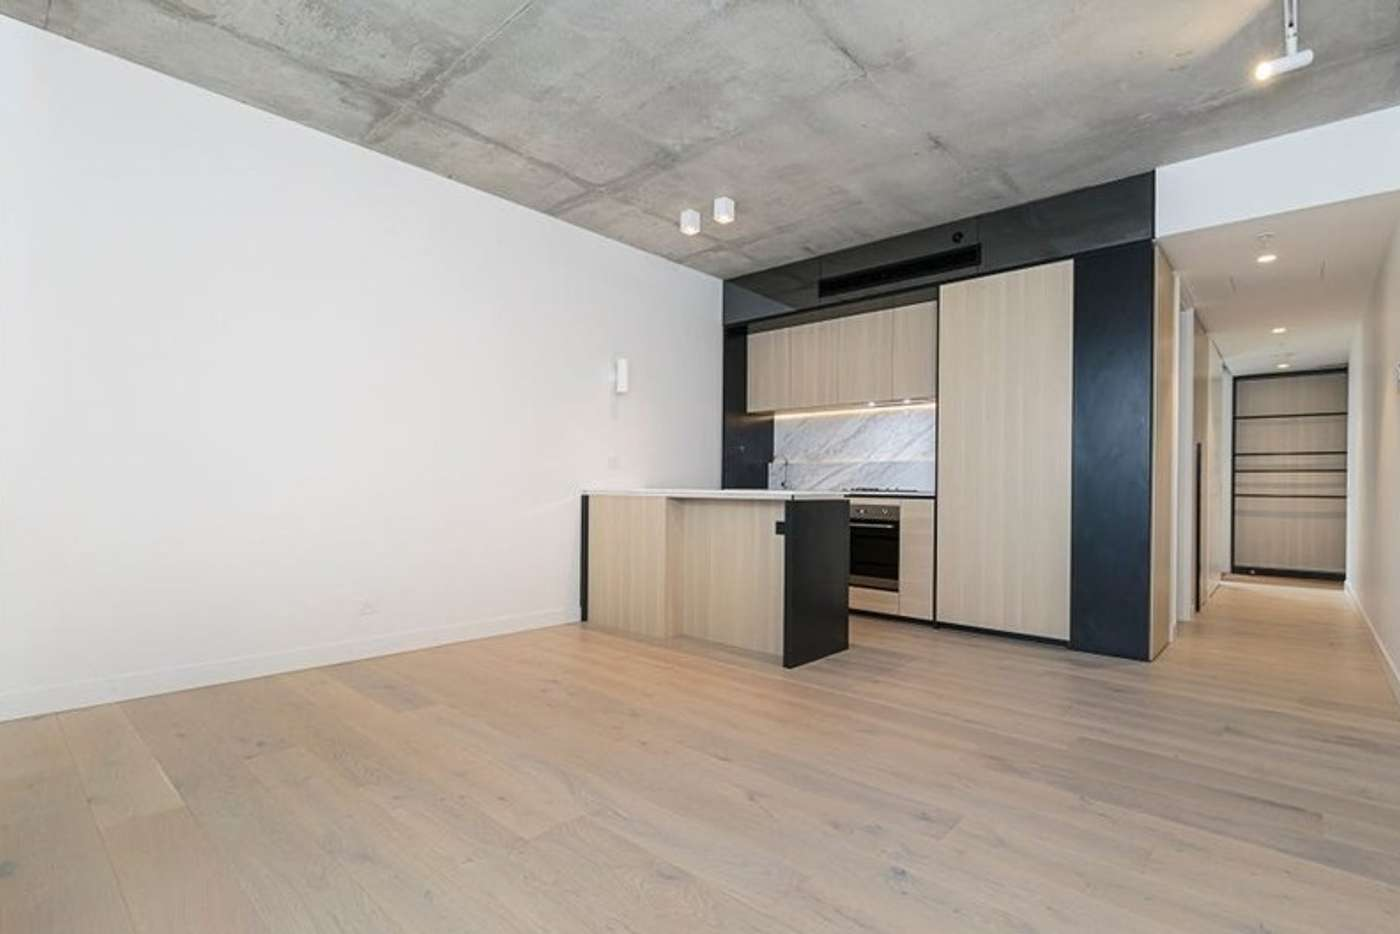 Main view of Homely apartment listing, 107/3 York Street, Fitzroy North VIC 3068